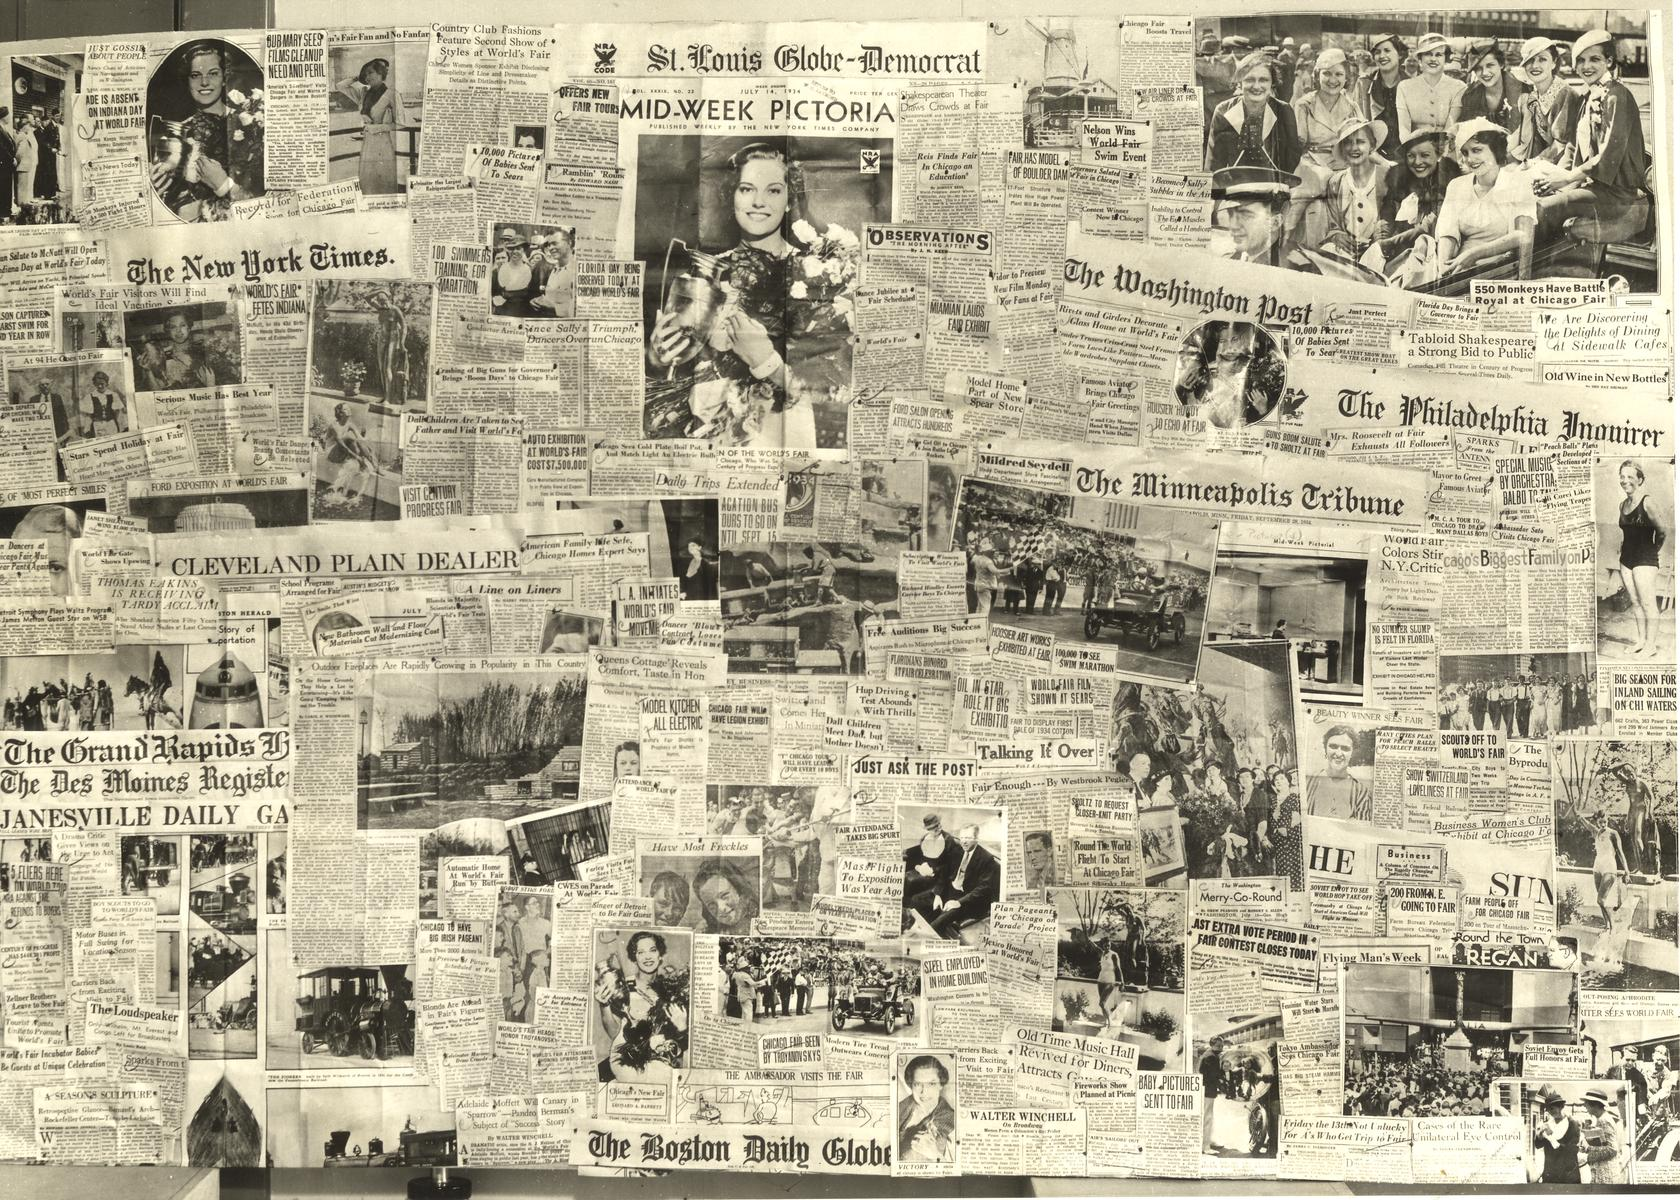 [Photo of collection of newspaper clippings demonstrating the extent of press coverage of A Century of Progress International Exposition, 1933-1934.]